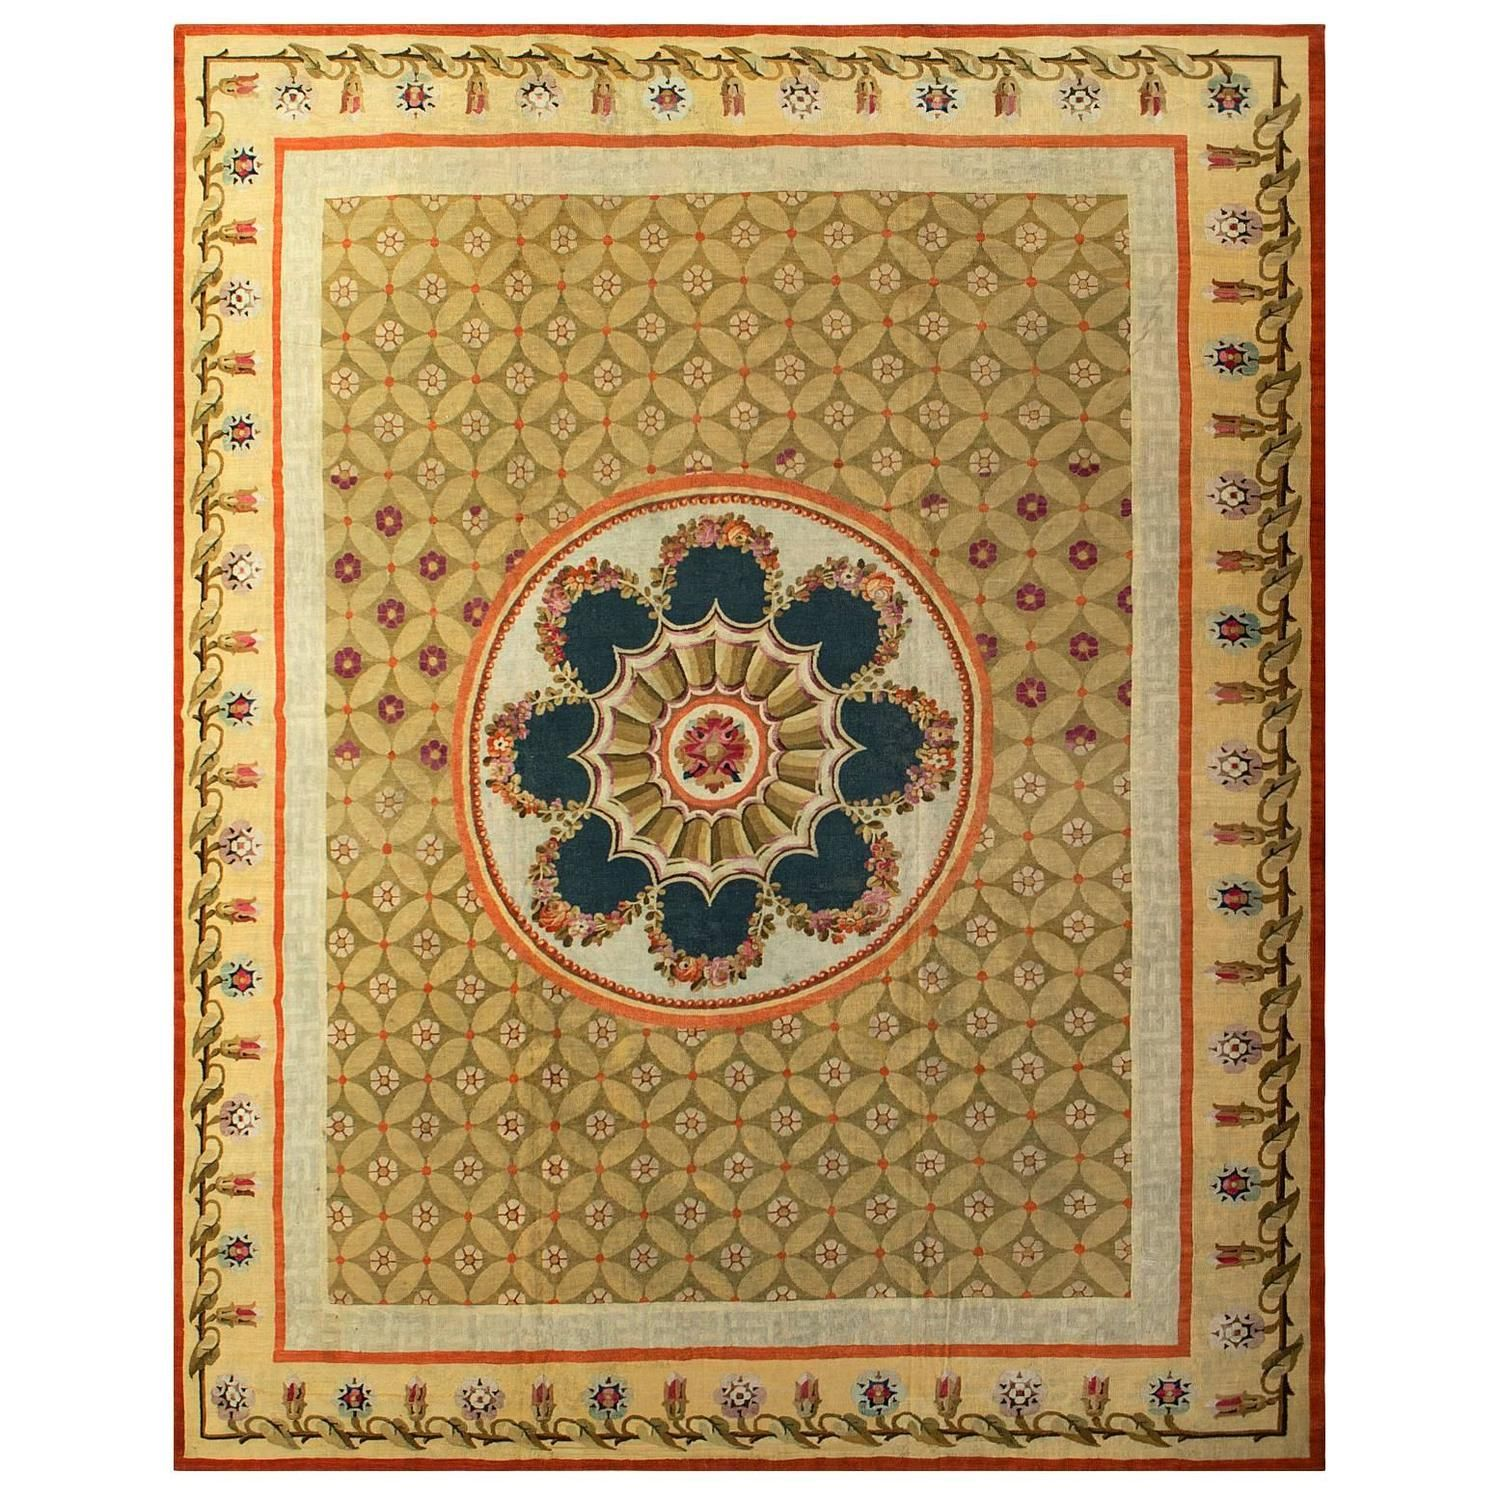 century htm art arts rug star and turkey museum anatolian xvii islamic empire rugs ottoman turkish ushak